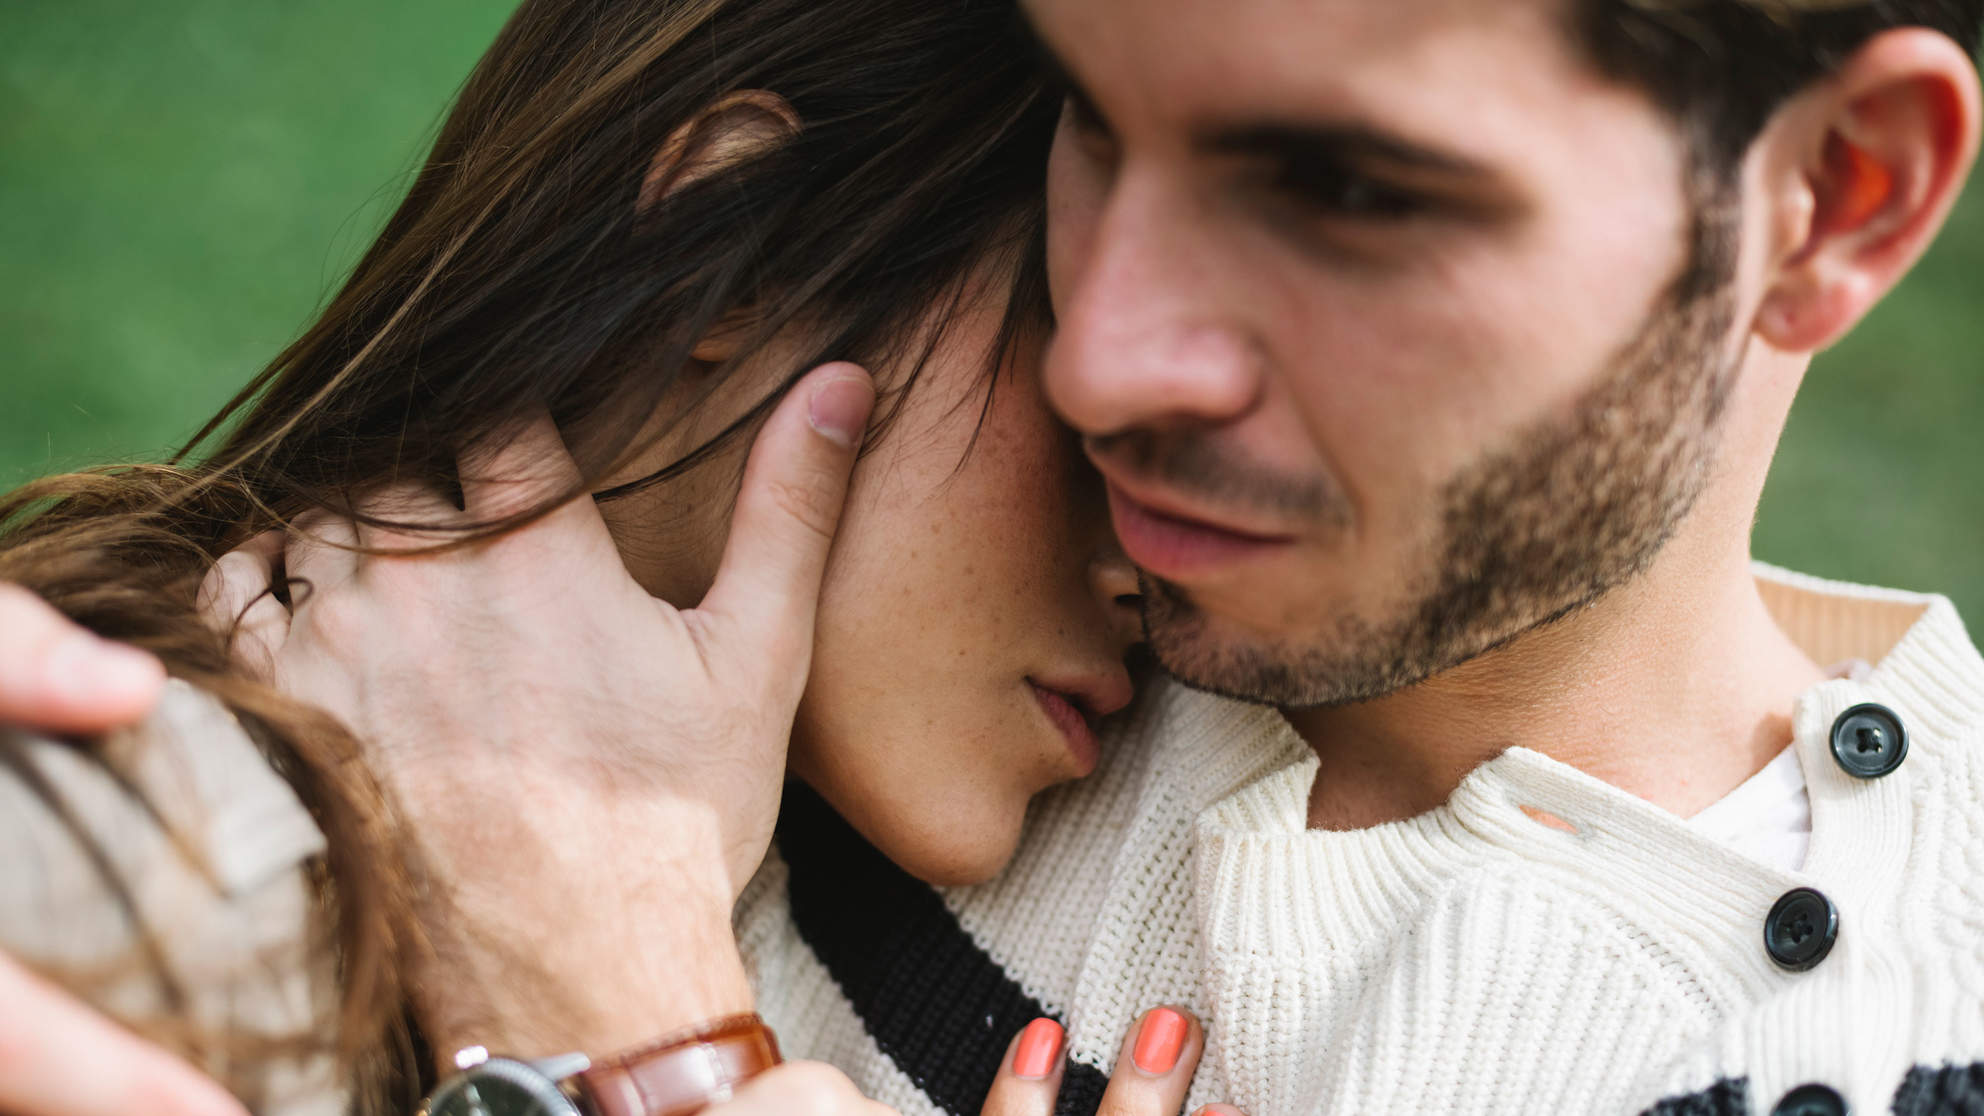 5 Questions You Must Agree on For Your Relationship to Last